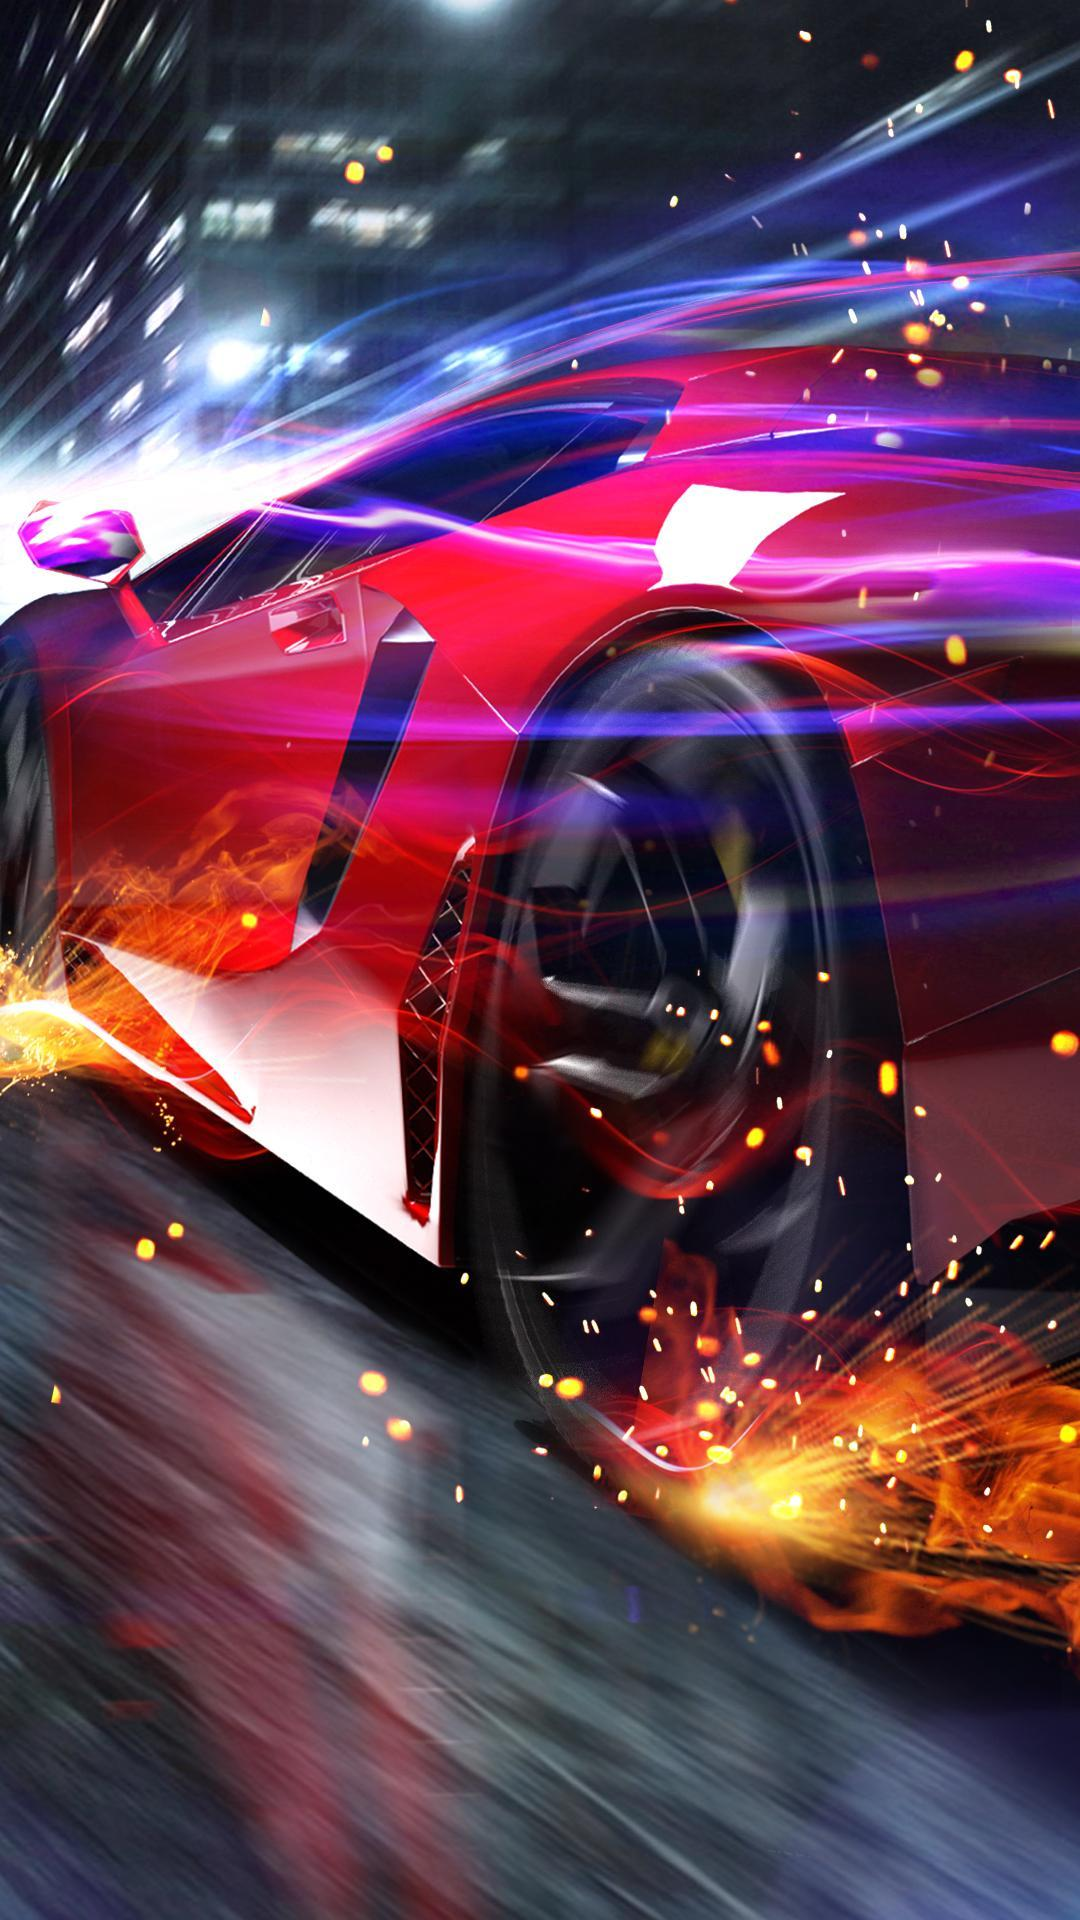 Racing Car Live Wallpaper For Android Apk Download